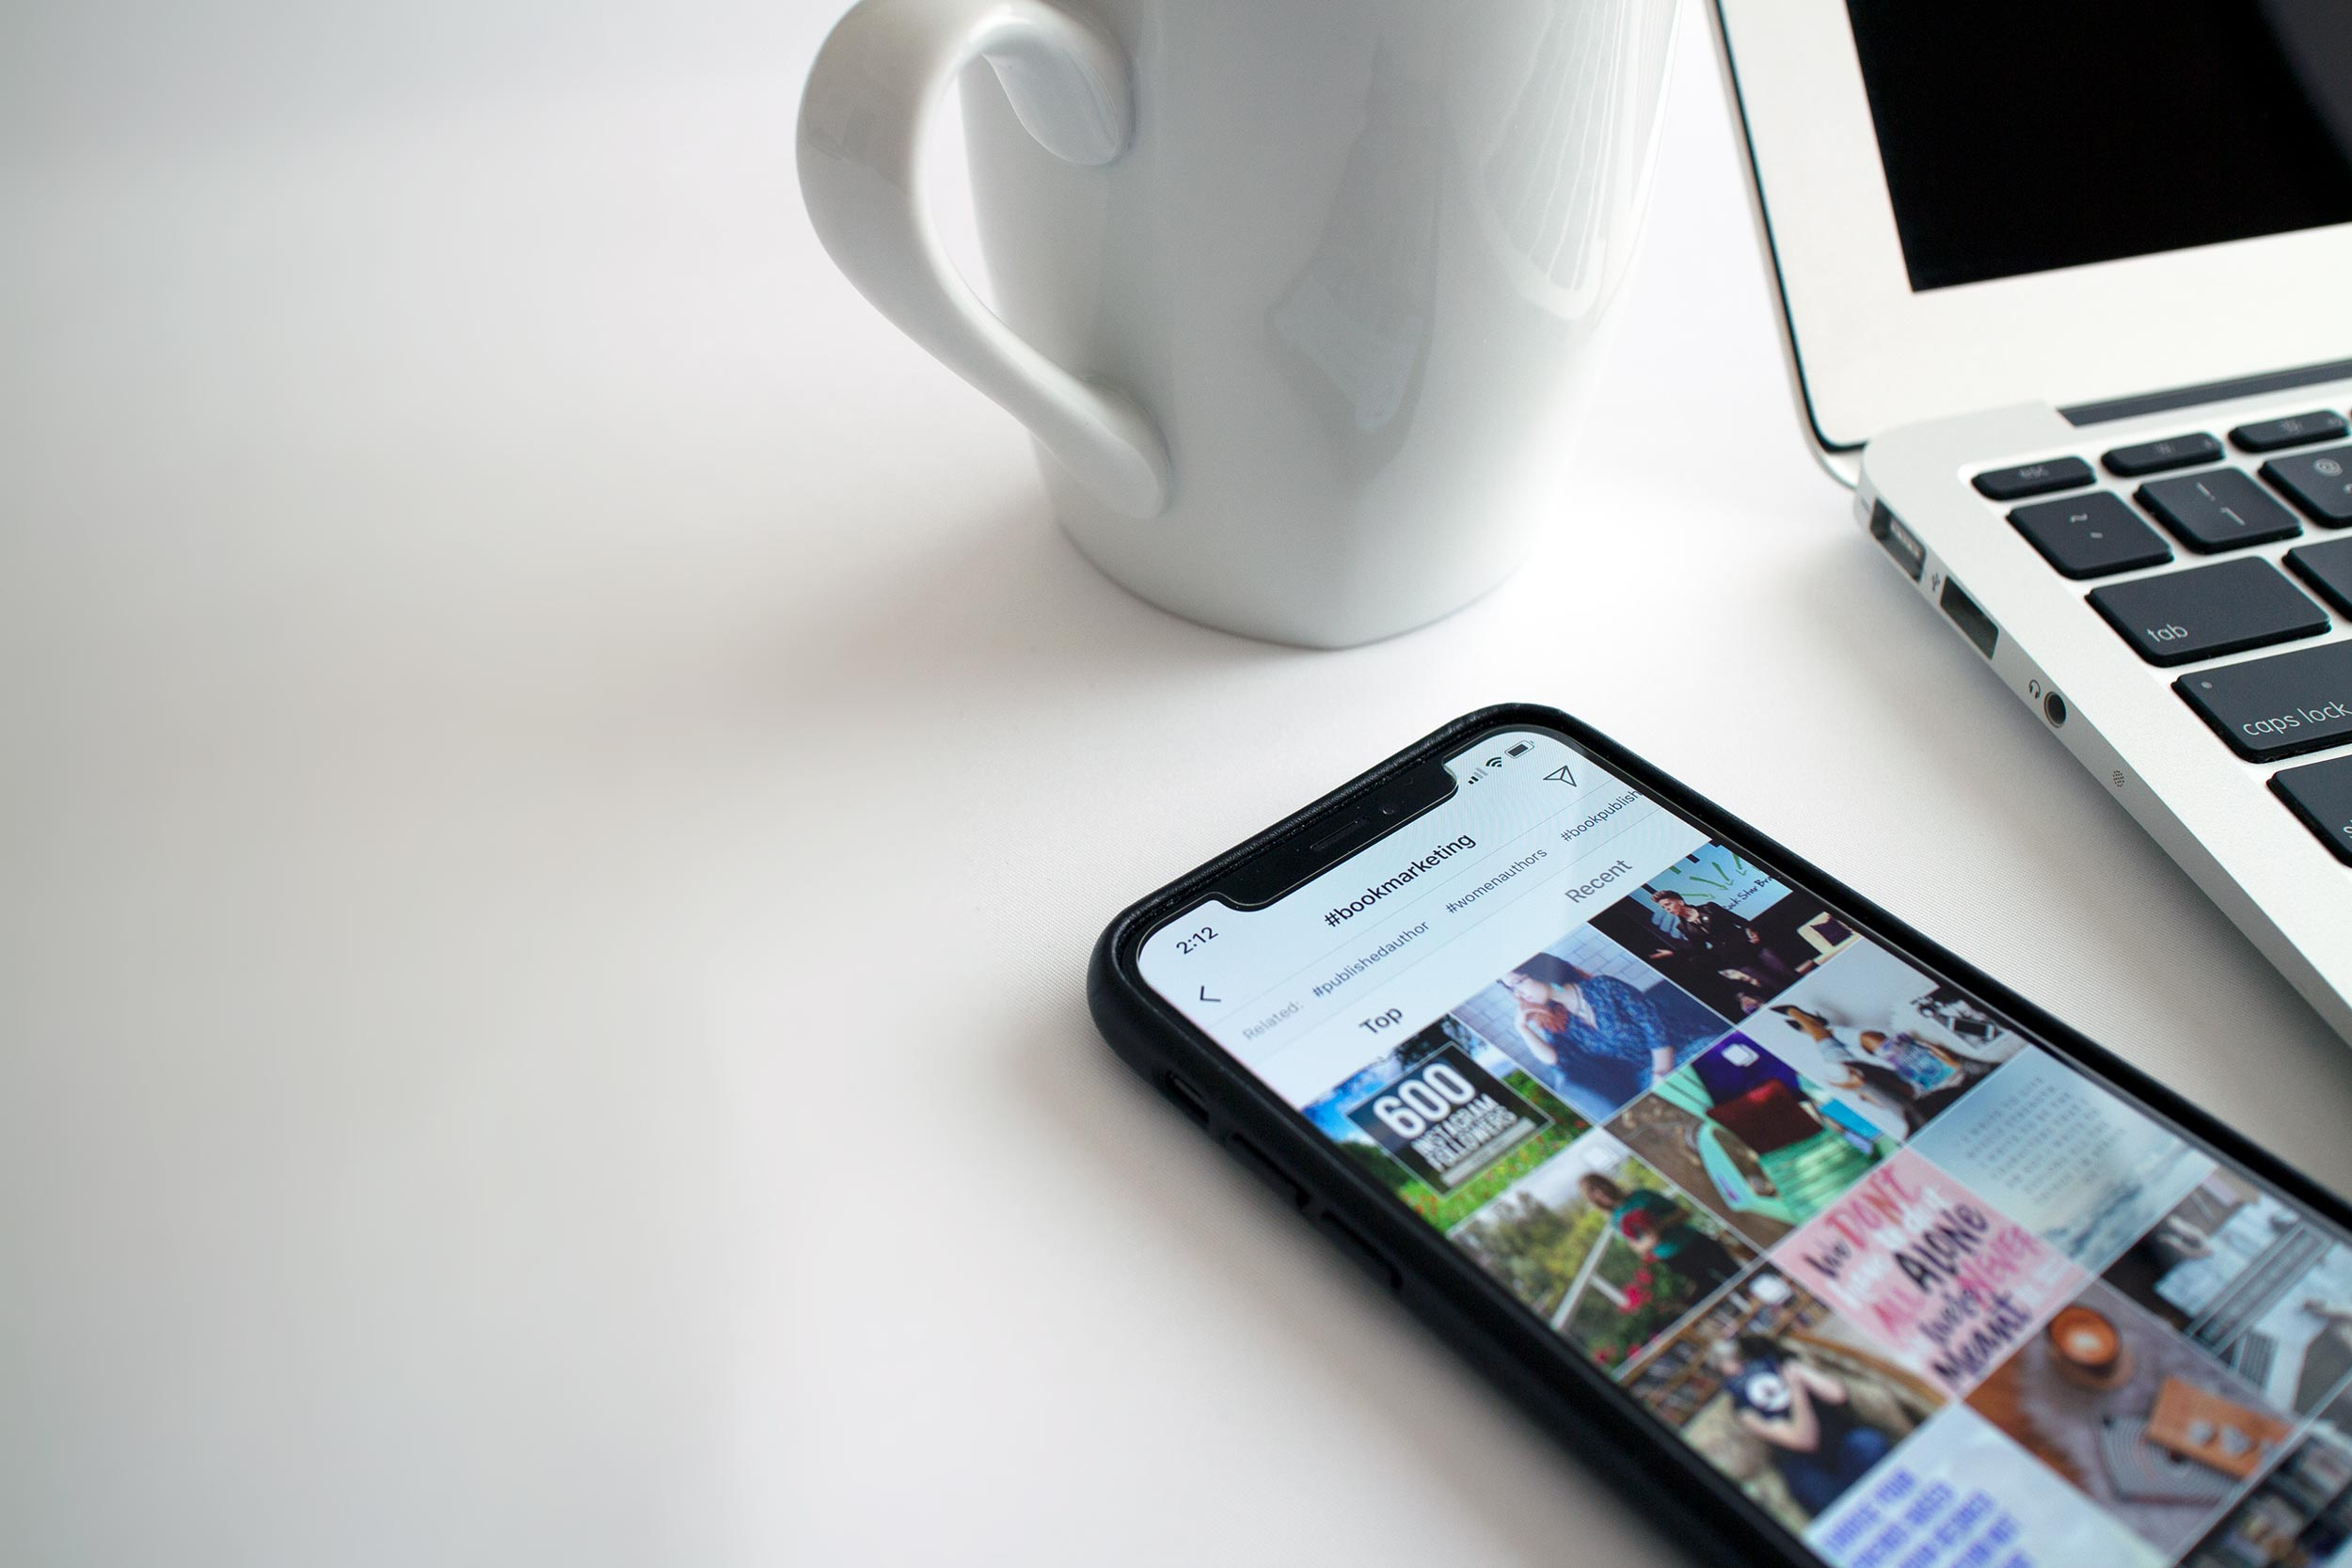 How Authors Can Quickly Find 1,000 New Readers Using Instagram - Quickly connect with 1,000 new ideal readers on Instagram using our 6-step system in this free download!